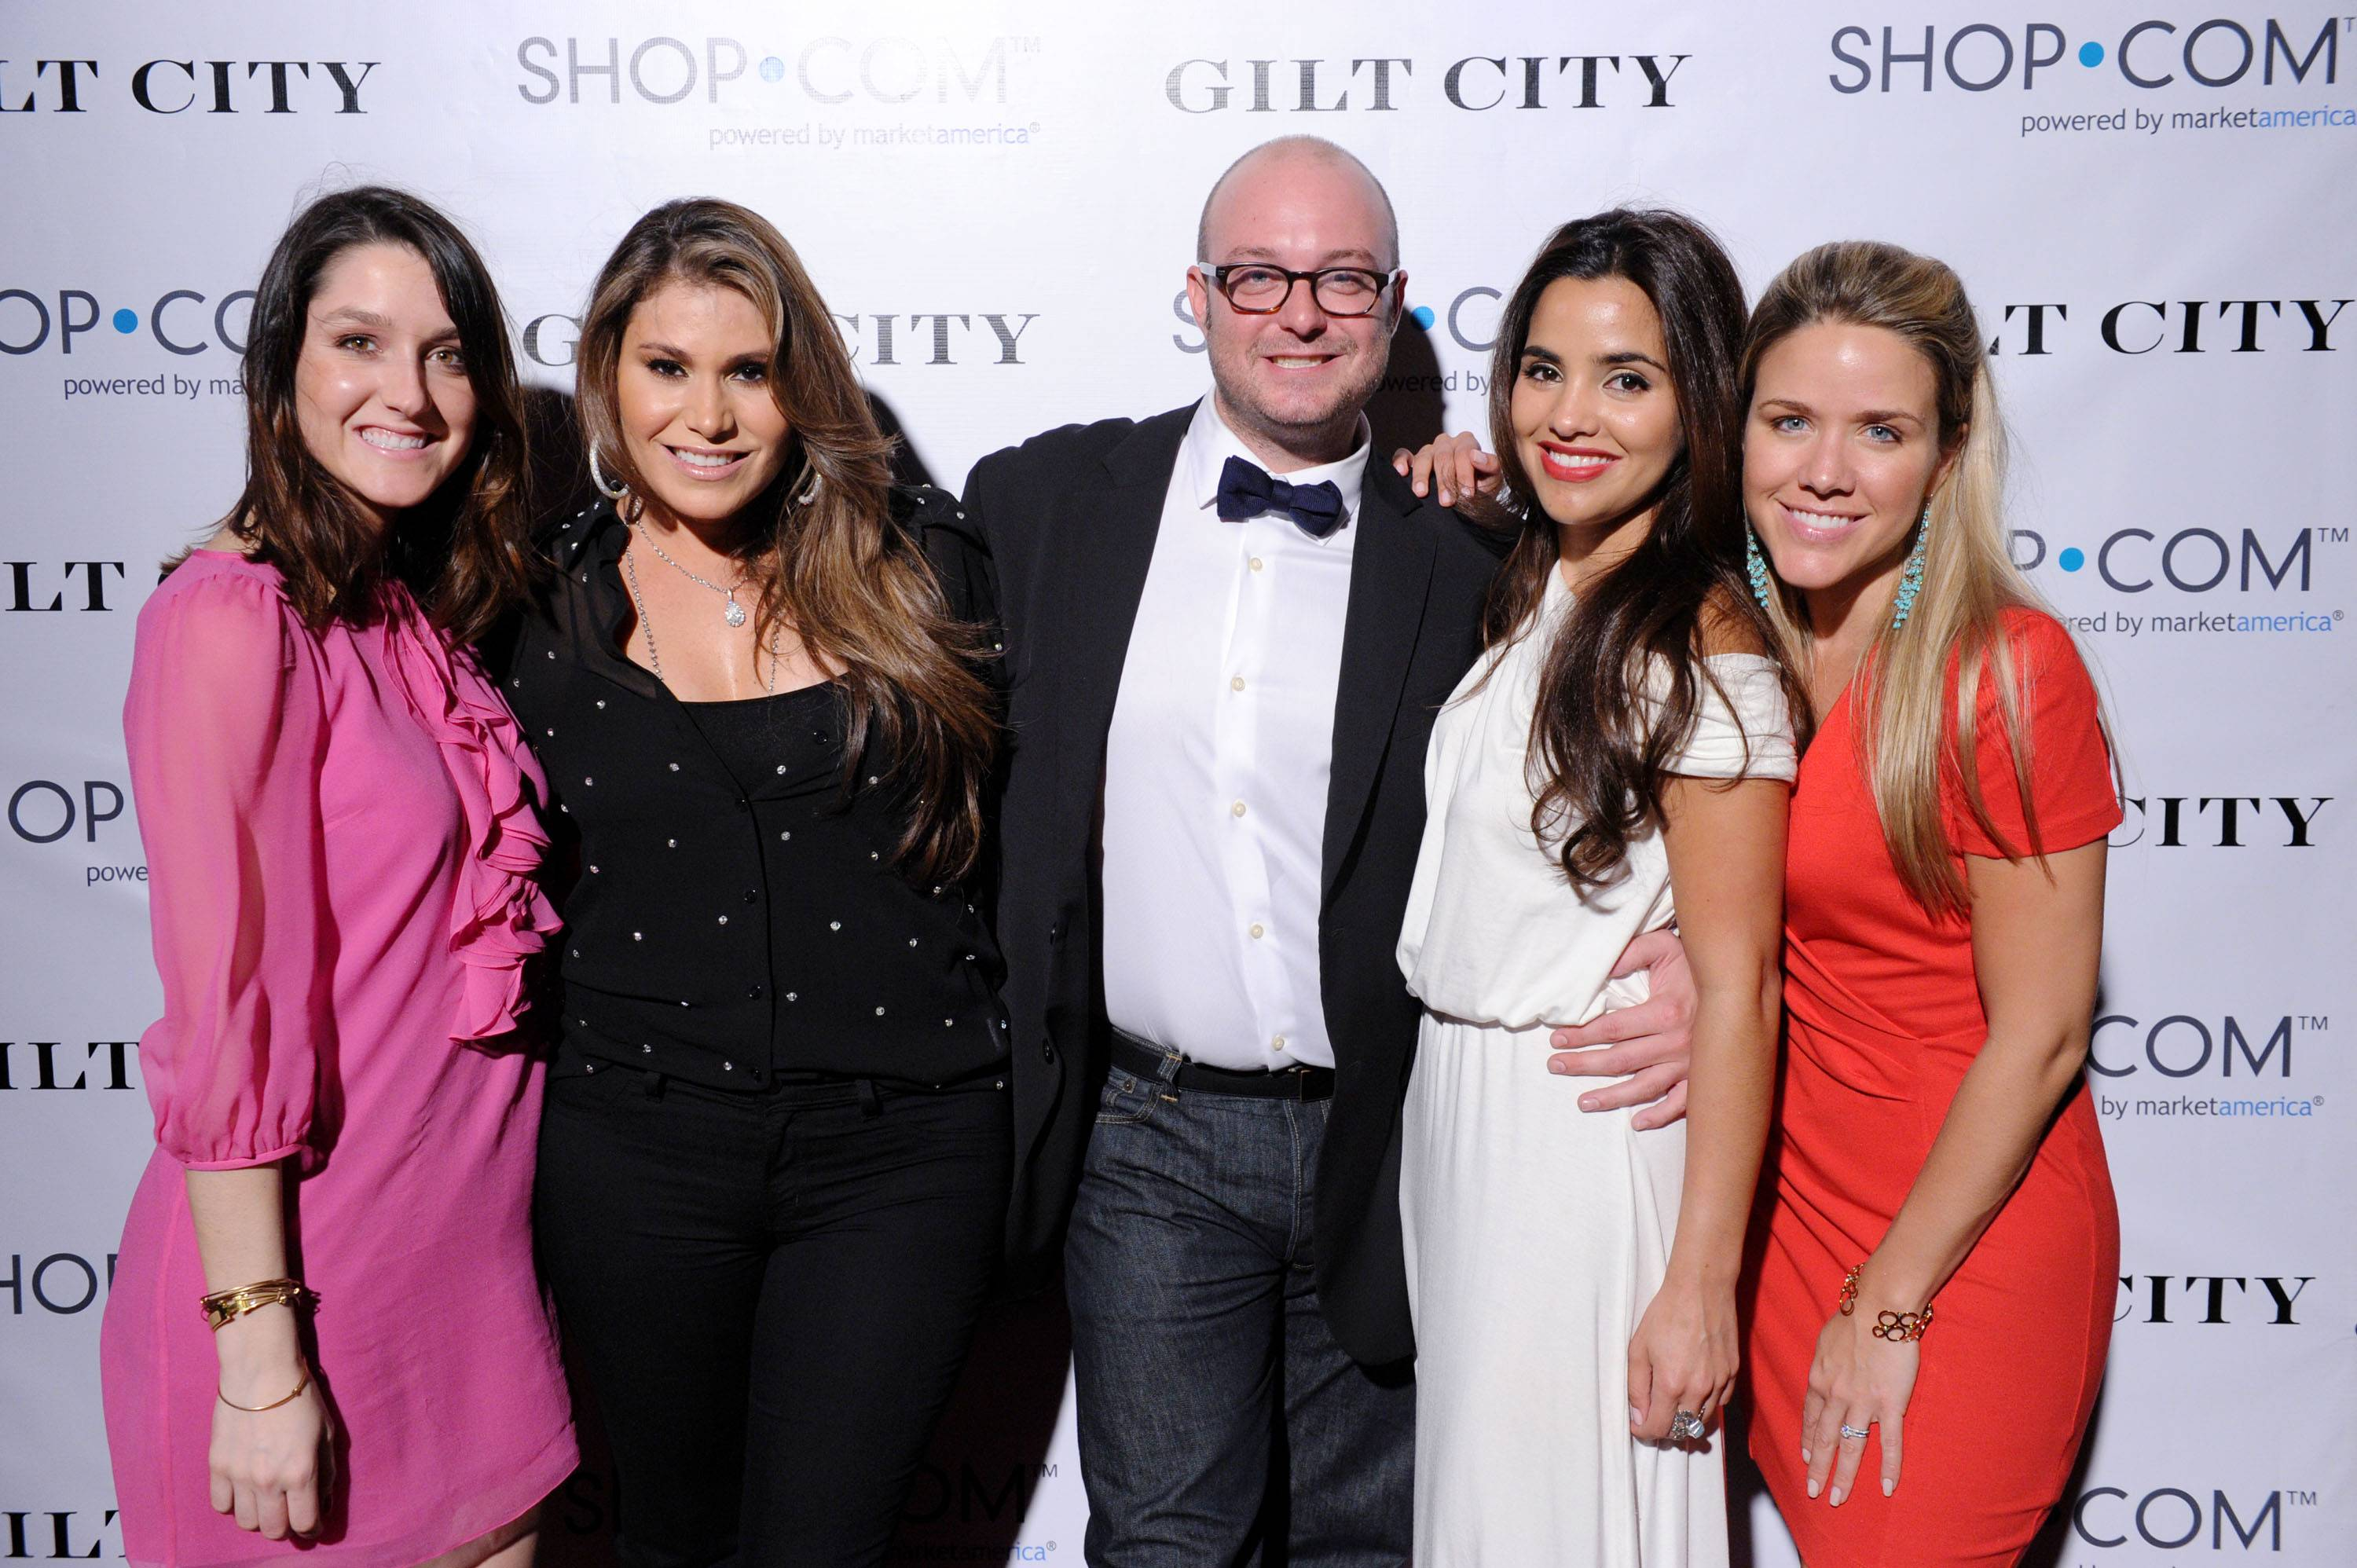 Guests on the step and repeat